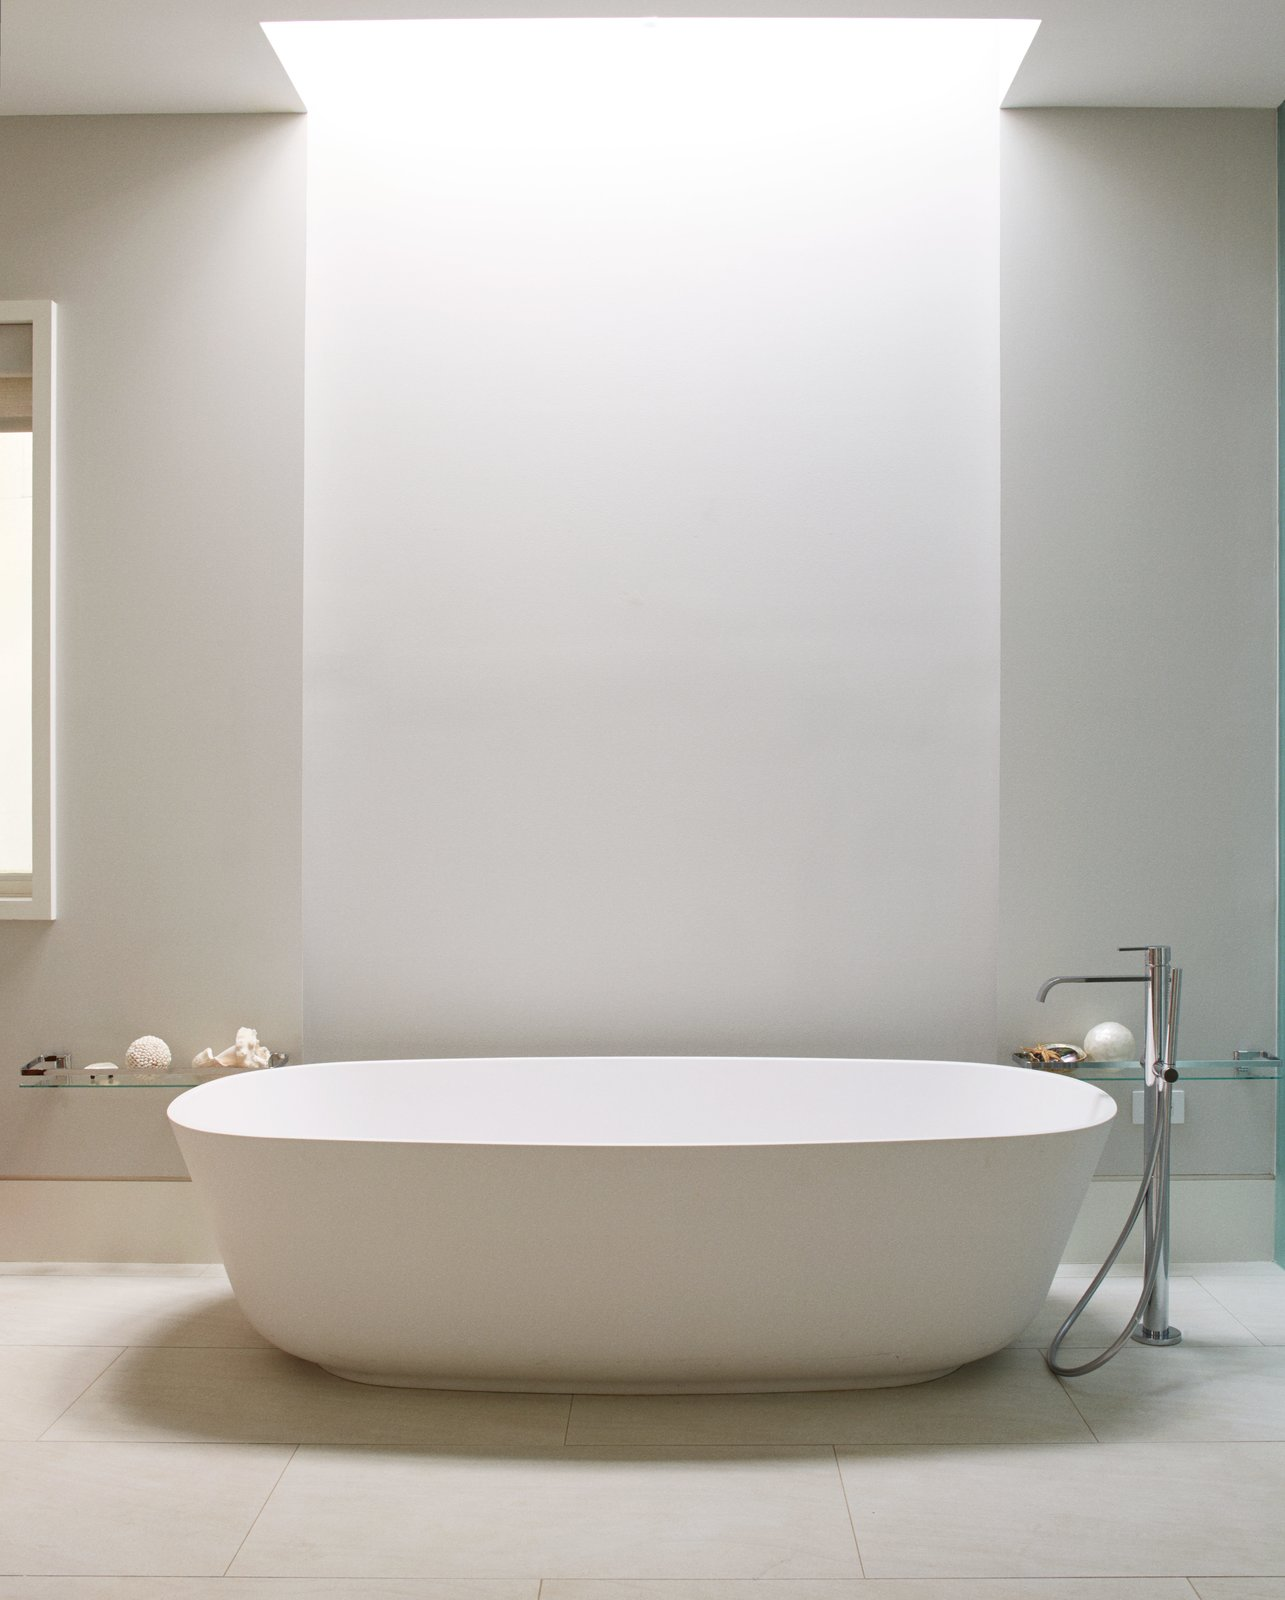 A freestanding Antonio Lupi tub defines the updated master bath, which also features an open-plan layout and a skylight by Velux. An Impressive 20-Foot Skylight Transforms a Jumbled Chicago Home - Photo 13 of 13